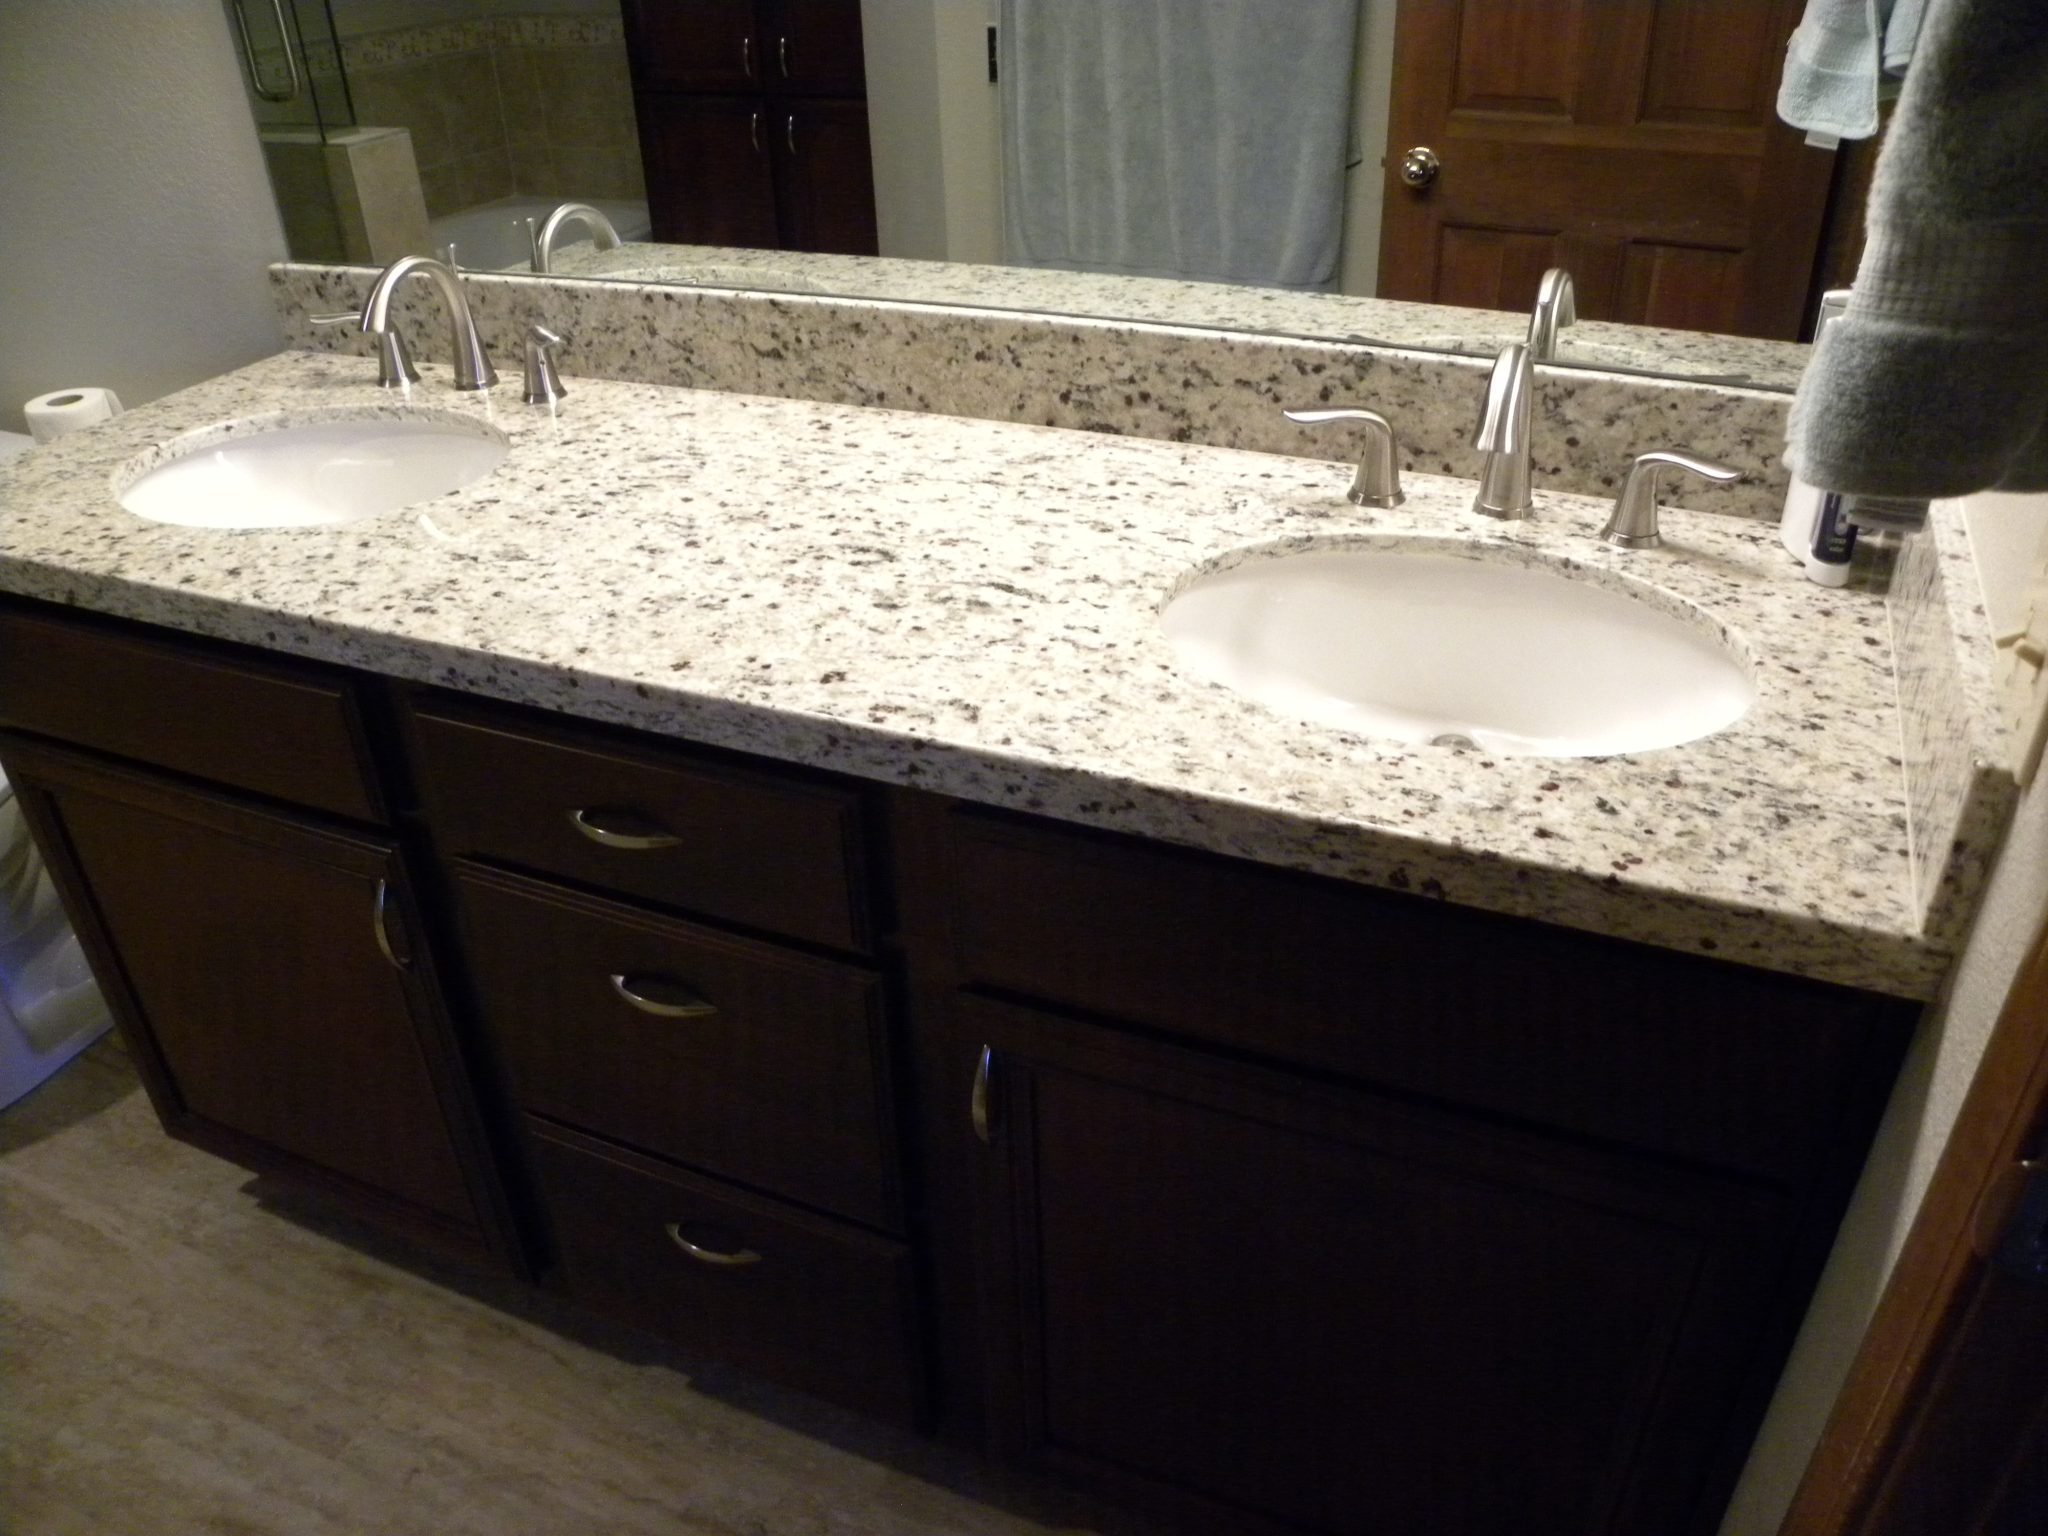 Interior shot of a newly remodeled bathroom with white granite countertops